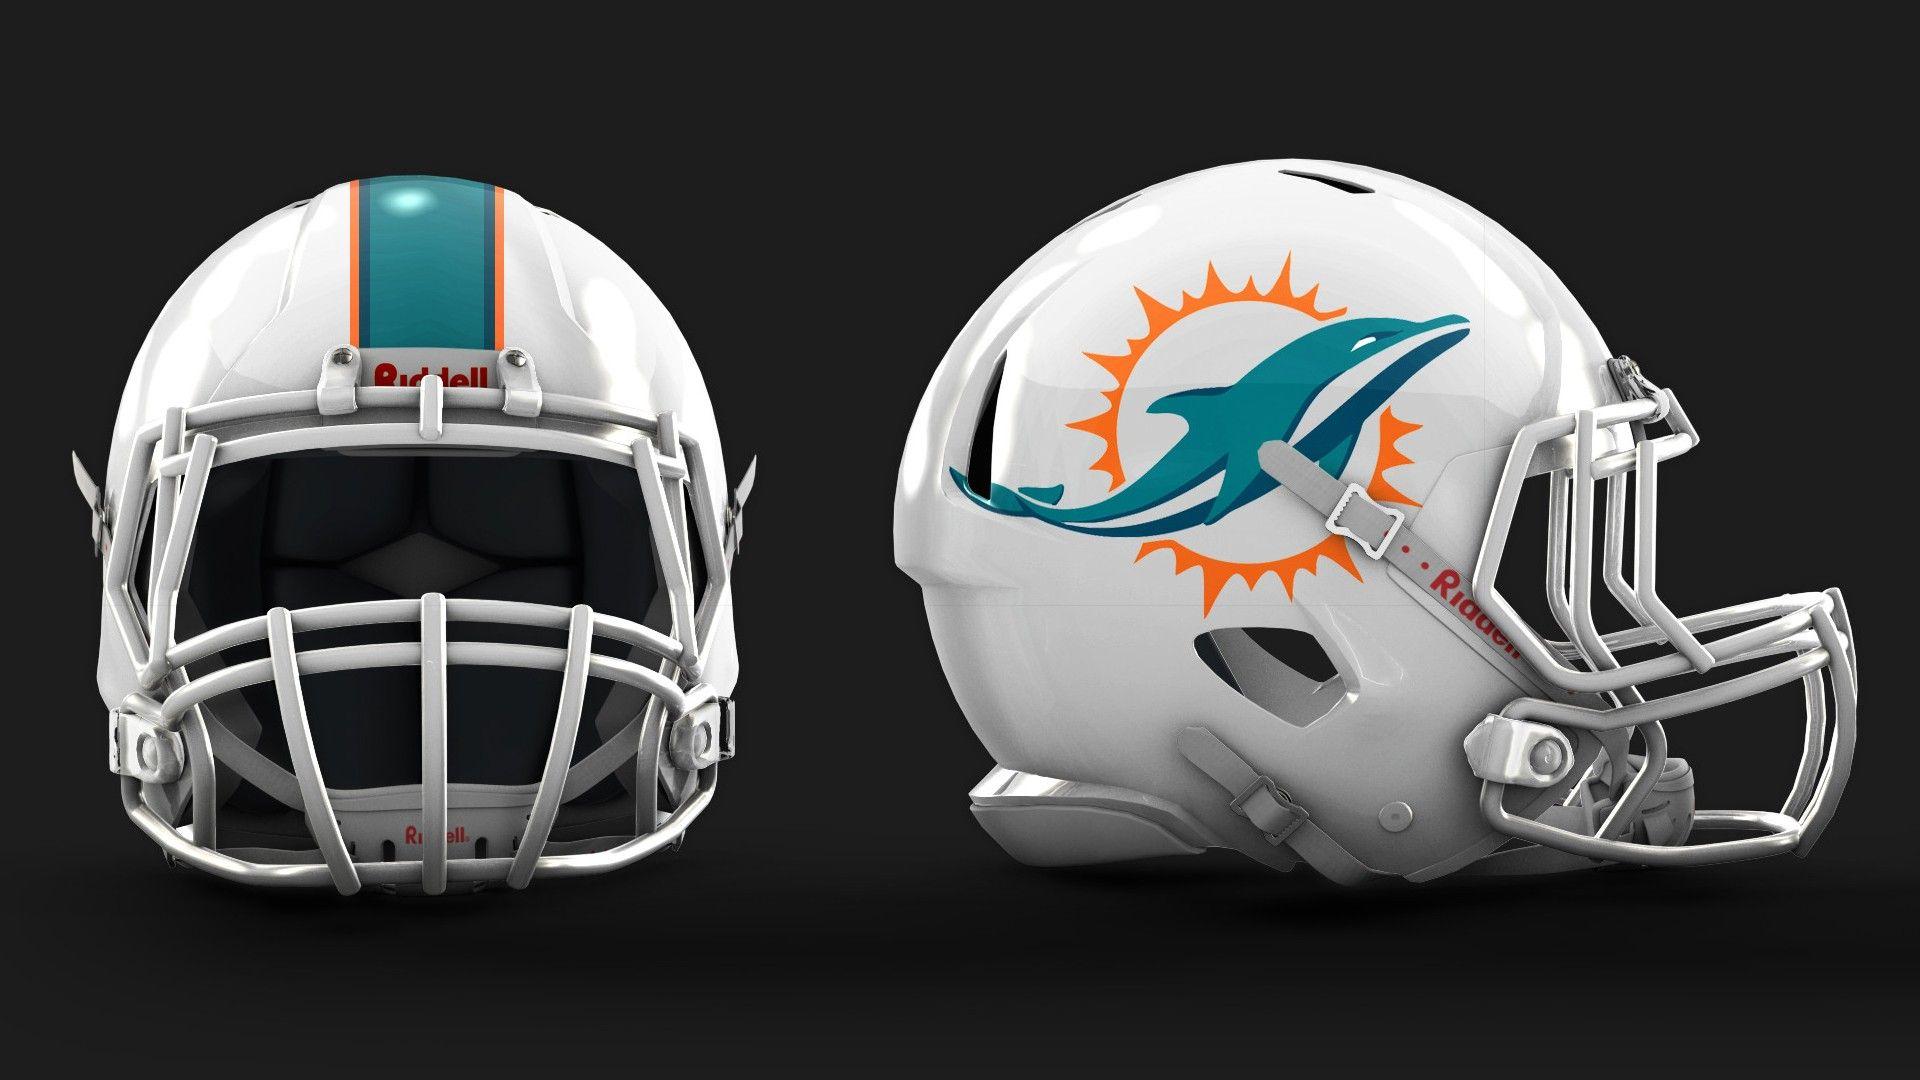 Miami Dolphins 2013 New Logo And HelmetGood To See The Old Colors Back